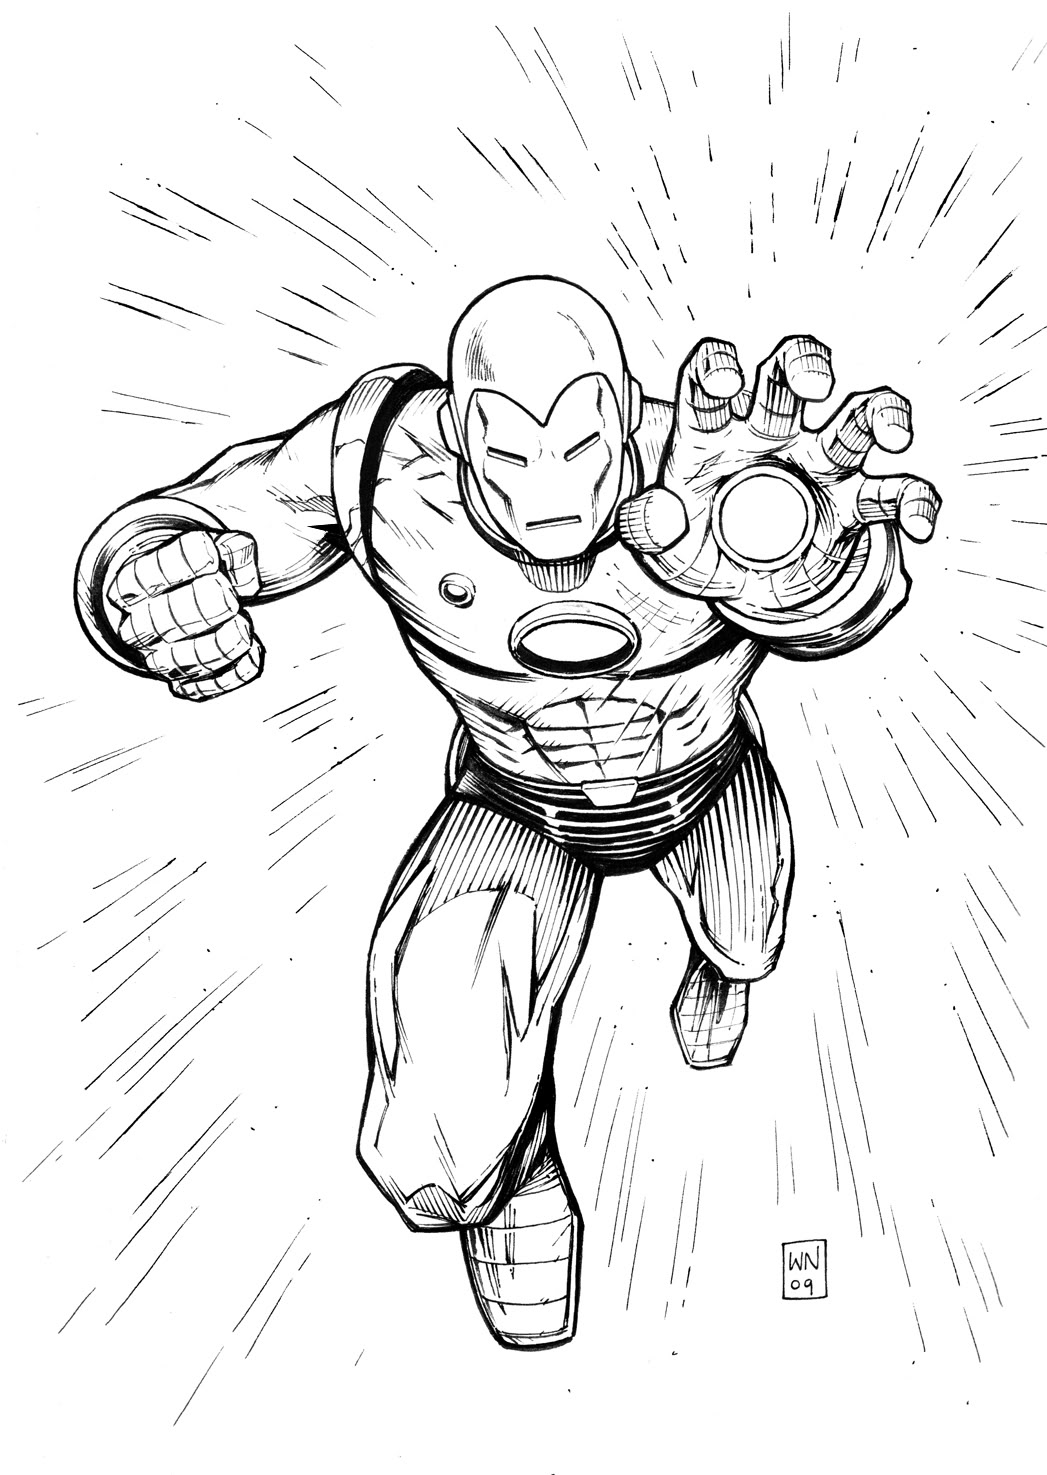 iron man cartoon coloring pages iron man ready ultimate weapon coloring page superhero iron pages coloring cartoon man